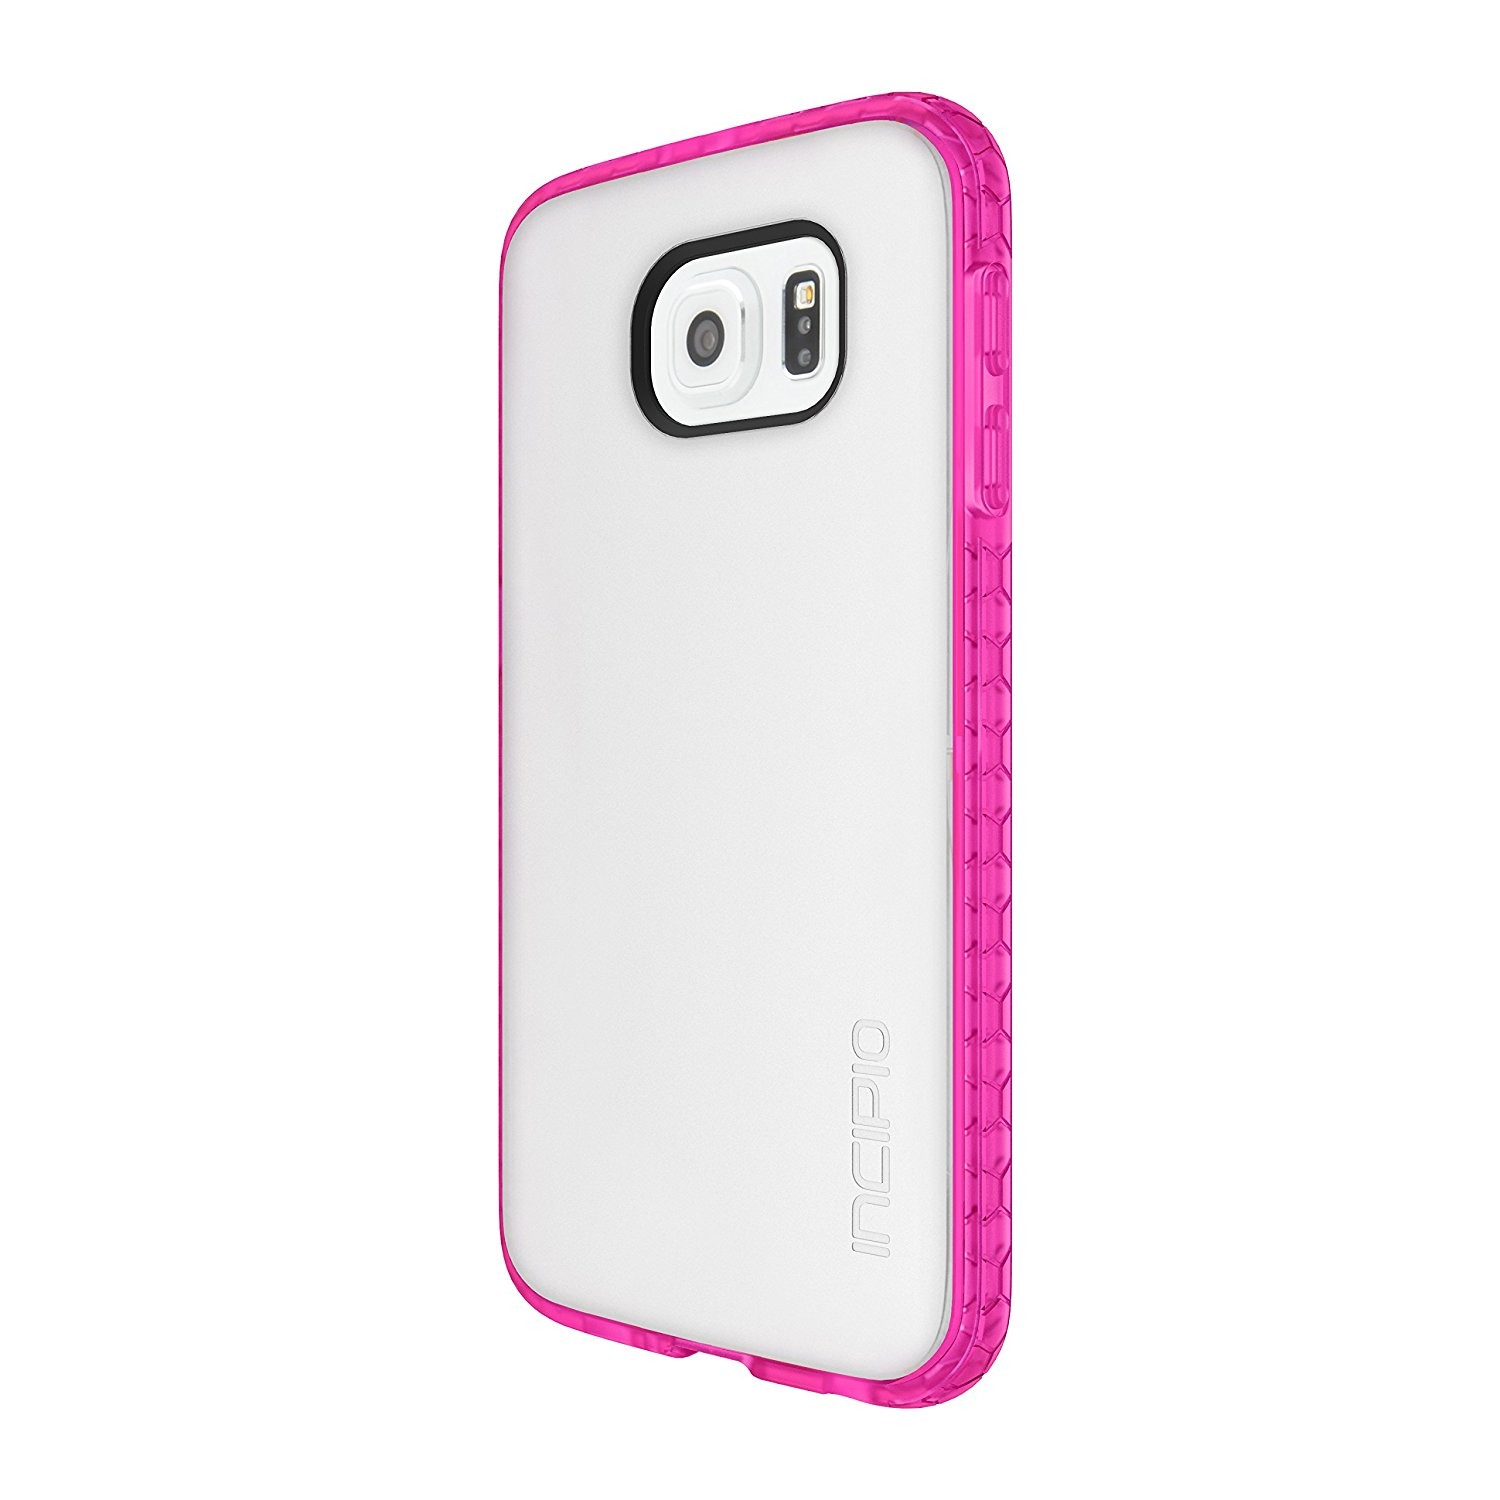 Incipio Octane Shock Absorbing Case for Samsung Galaxy S6 - Frost/Neon Pink